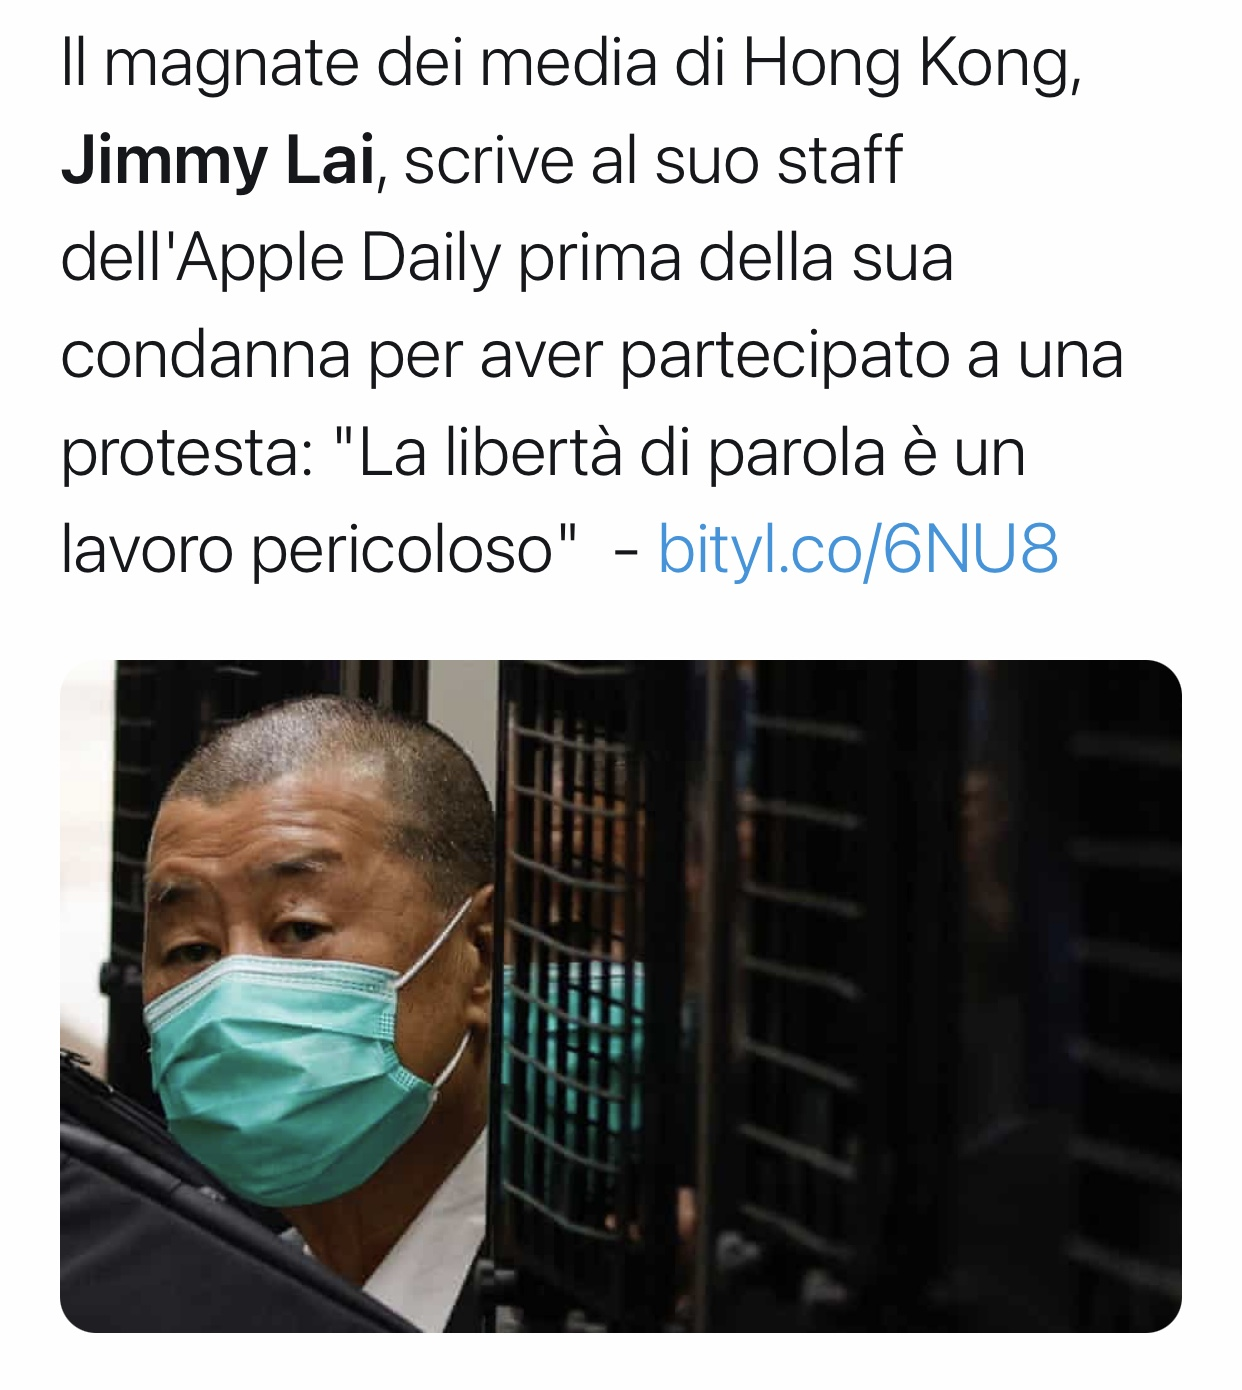 Jimmy Lai carcere